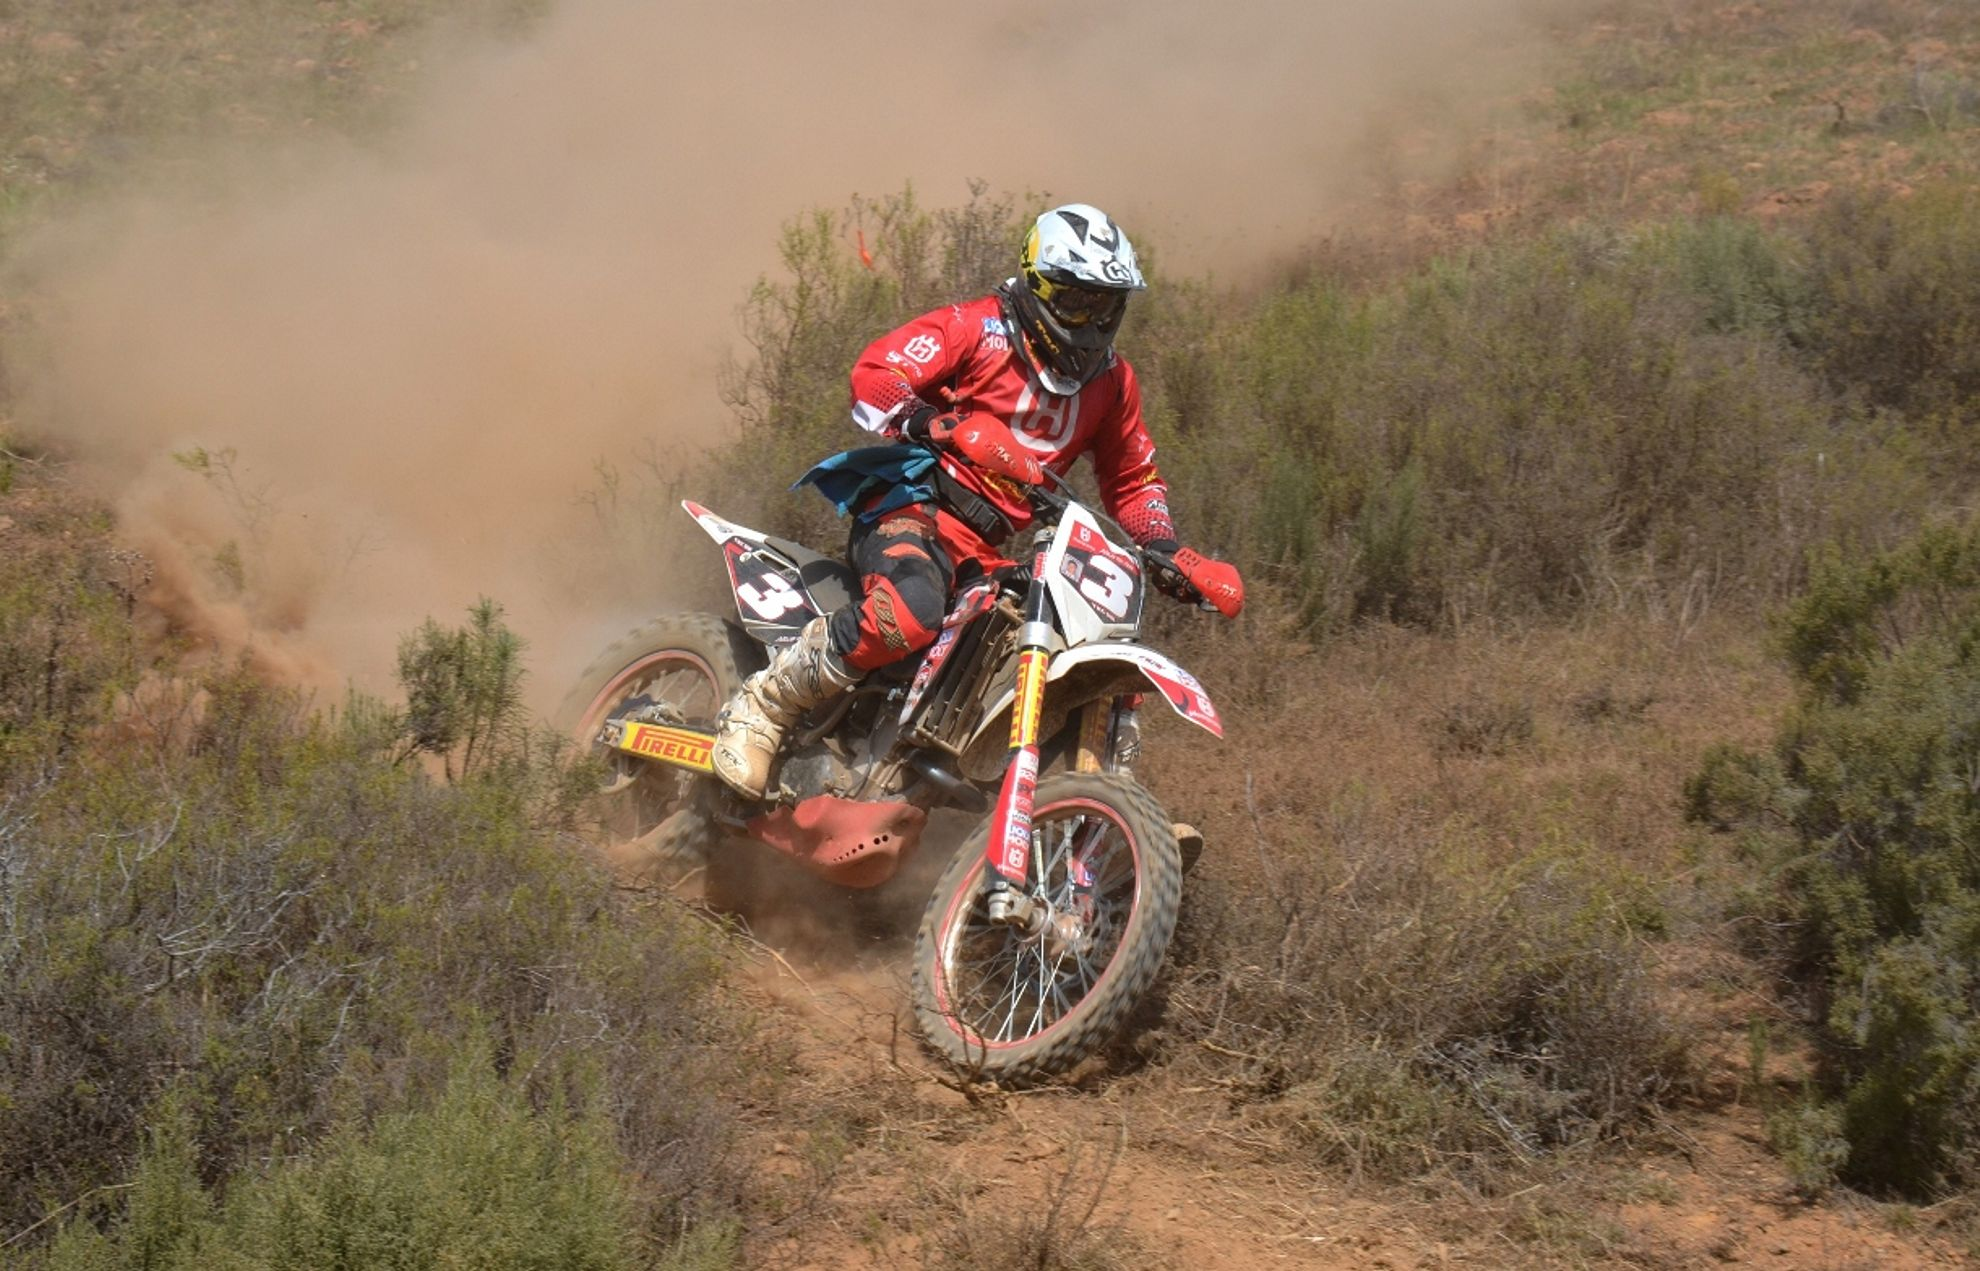 South Africa Enduro Racing